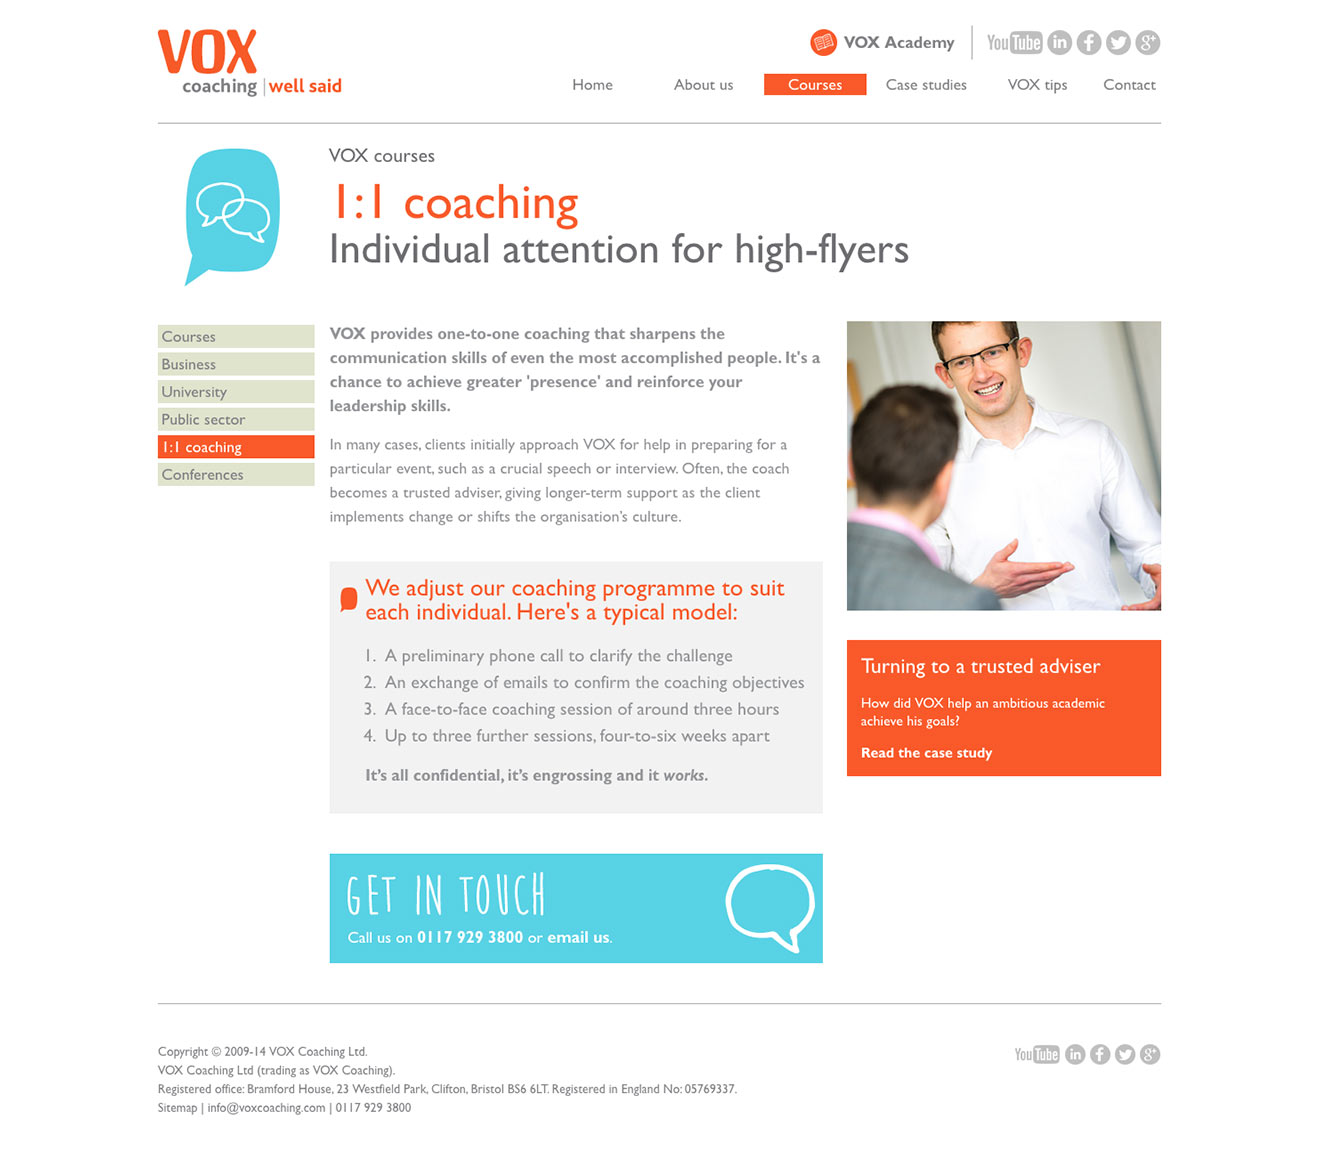 Ember web design work - Vox Coaching Digital branding and development